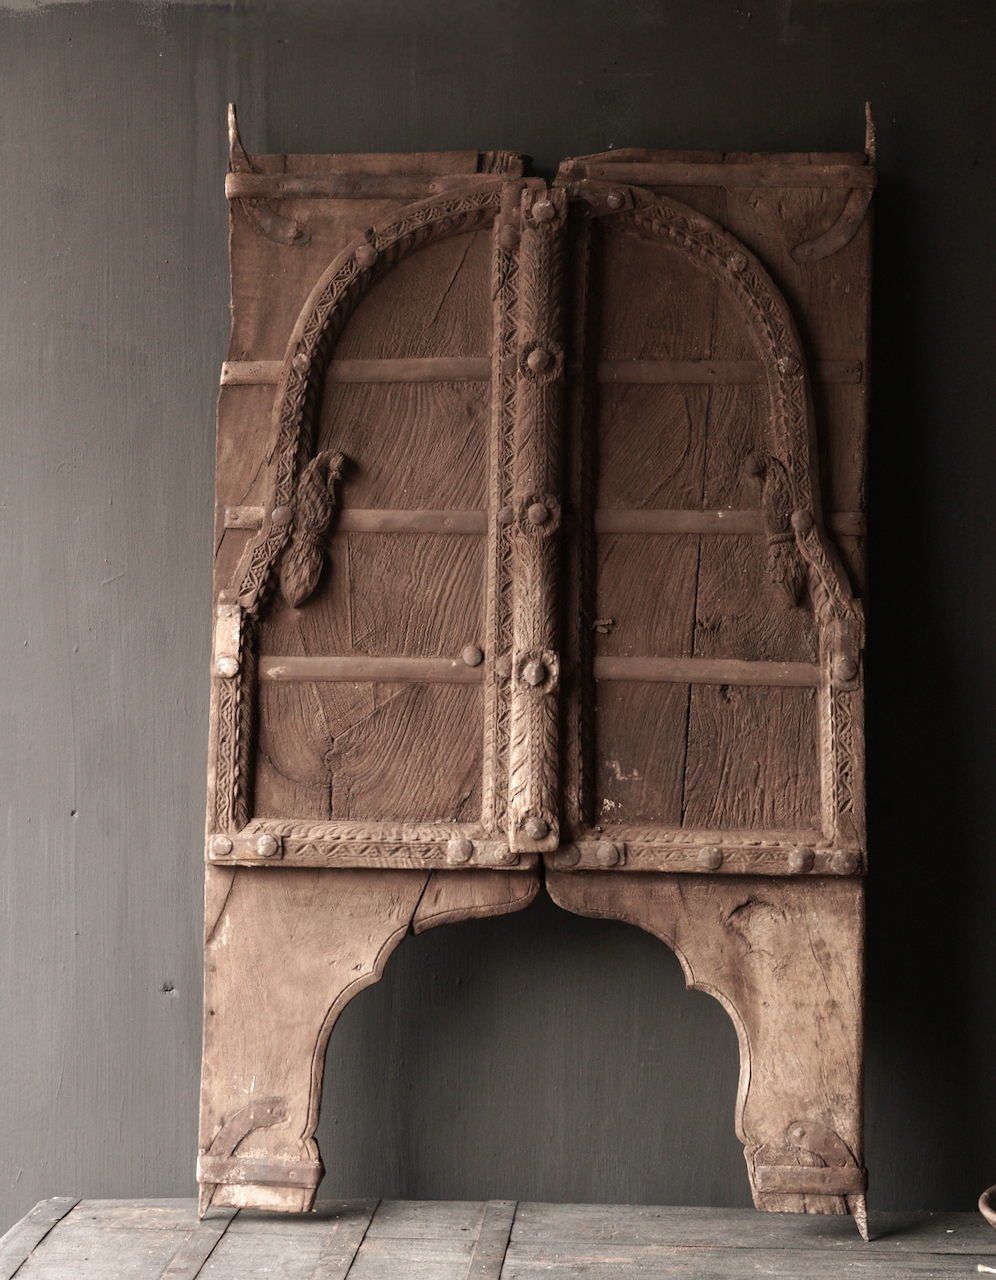 Tough wooden hatch from old building in India-2